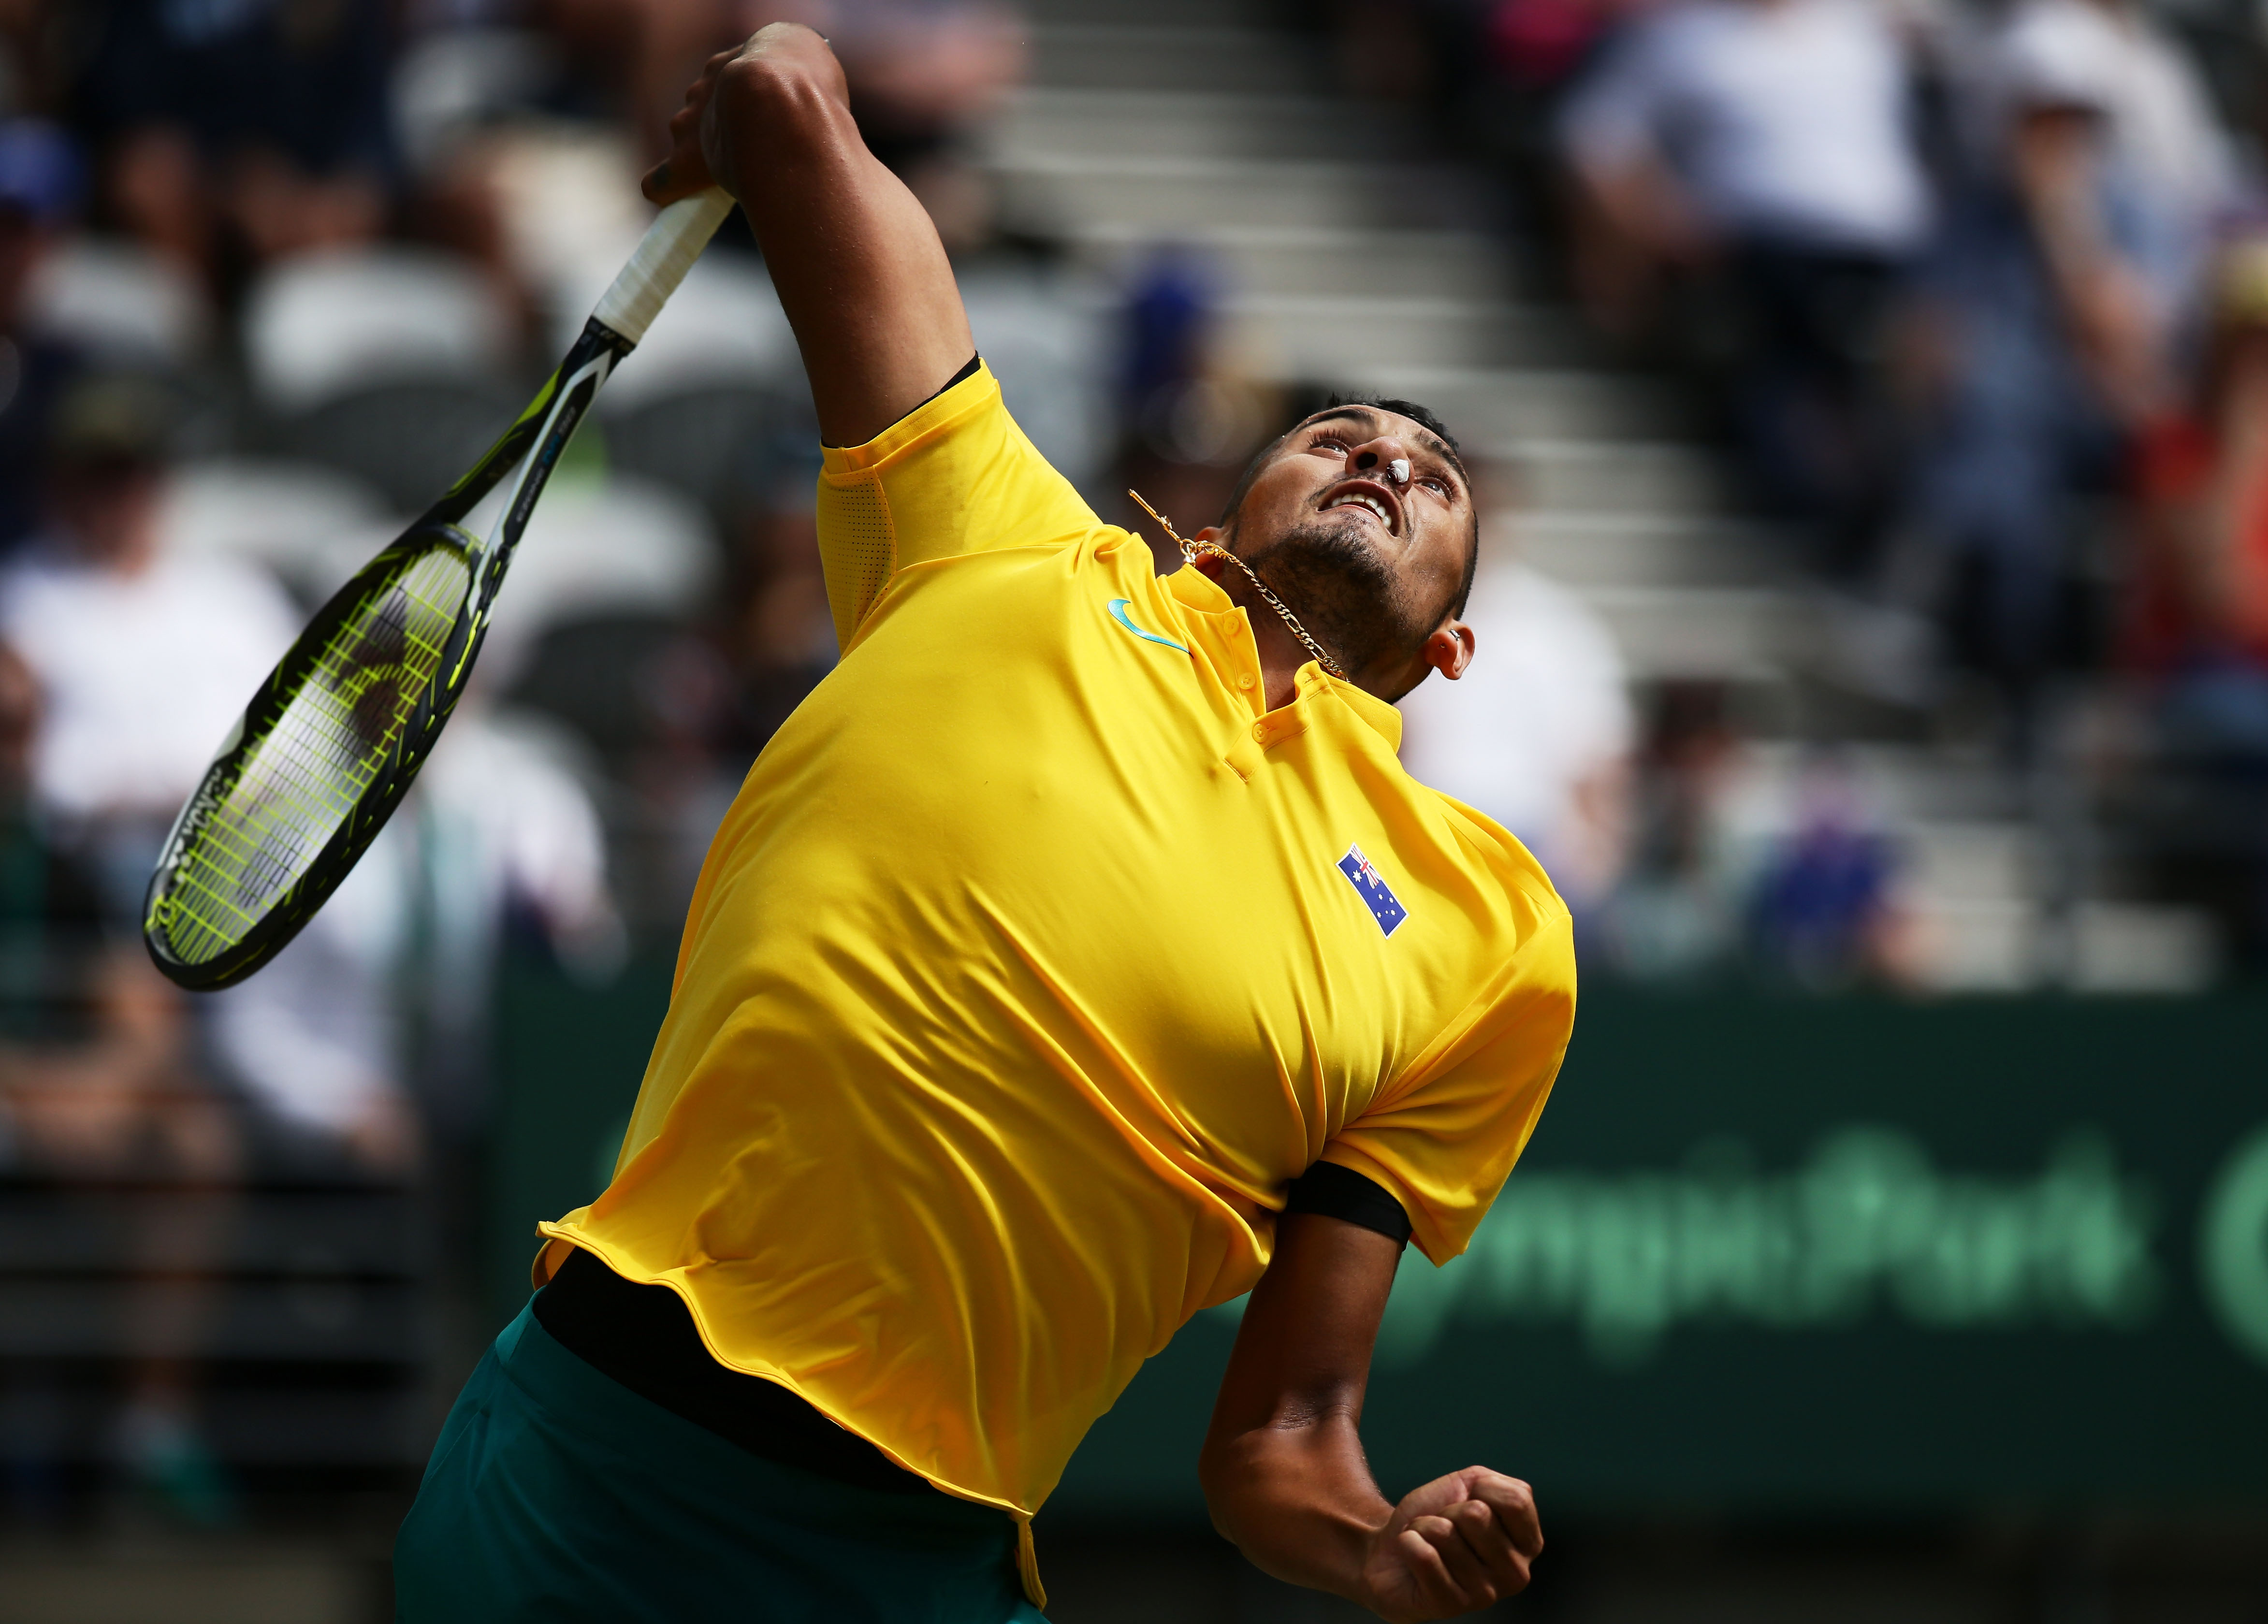 SYDNEY, AUSTRALIA - SEPTEMBER 16: Nick Kyrgios of Australia serves with his nose plugged due to a nose bleed in his singles match against Andrej Martin of Slovakia during the Davis Cup World Group playoff between Australia and Slovakia at Sydney Olympic Park Tennis Centre on September 16, 2016 in Sydney, Australia. (Photo by Matt King/Getty Images)